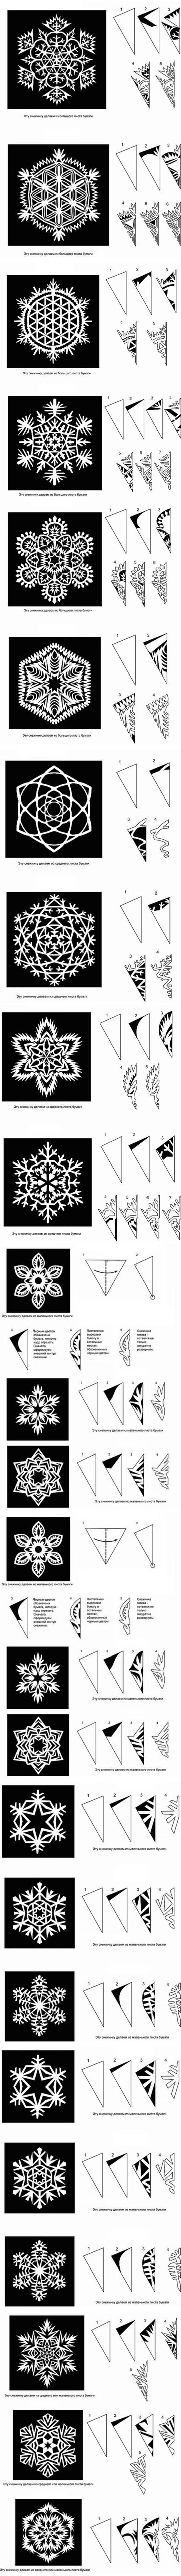 how to cut paper snowflakes advanced version